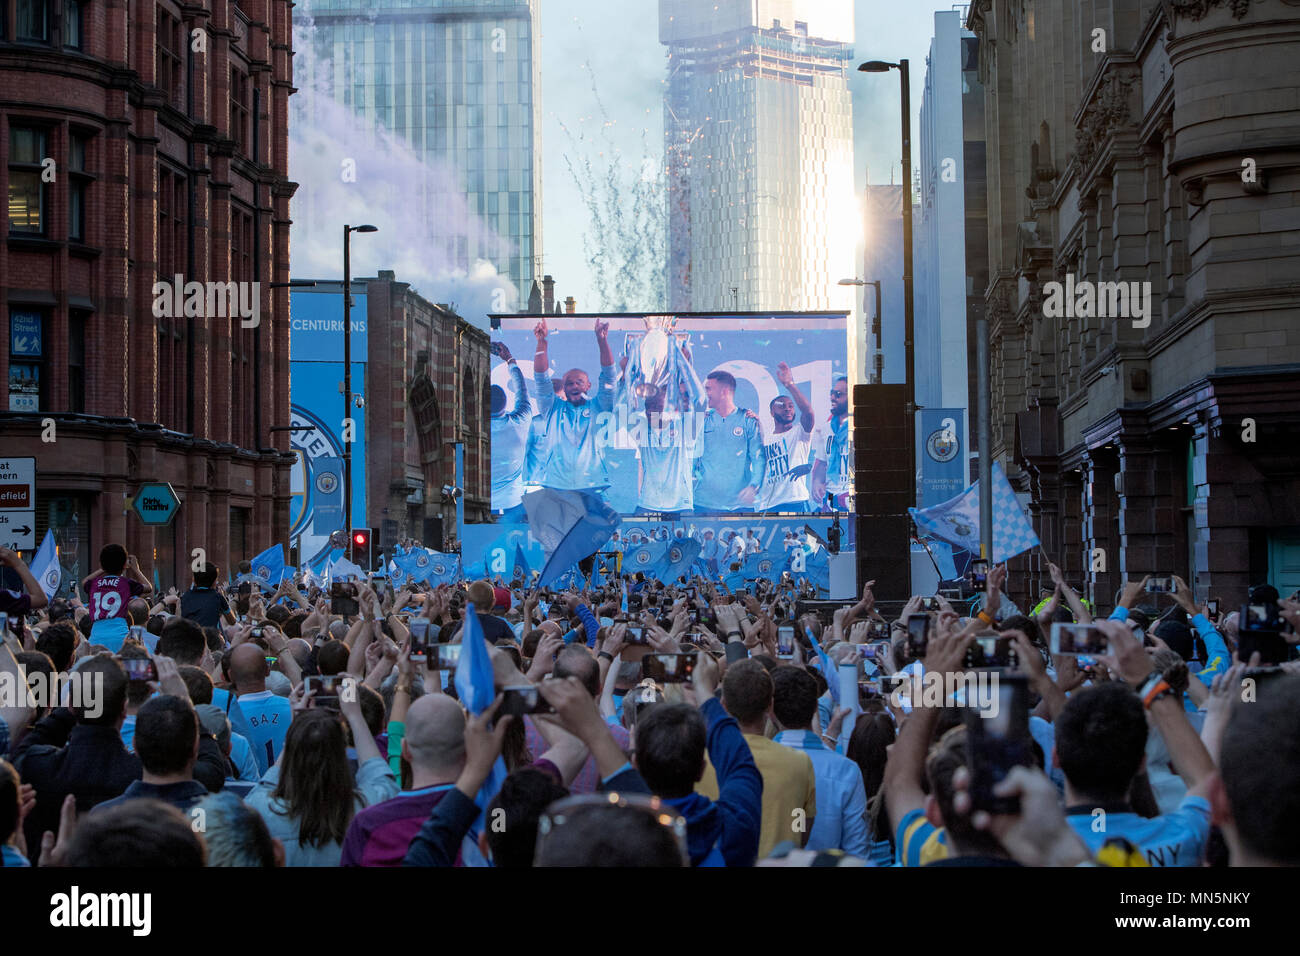 Manchester City players lift the trophies on stage during the ...